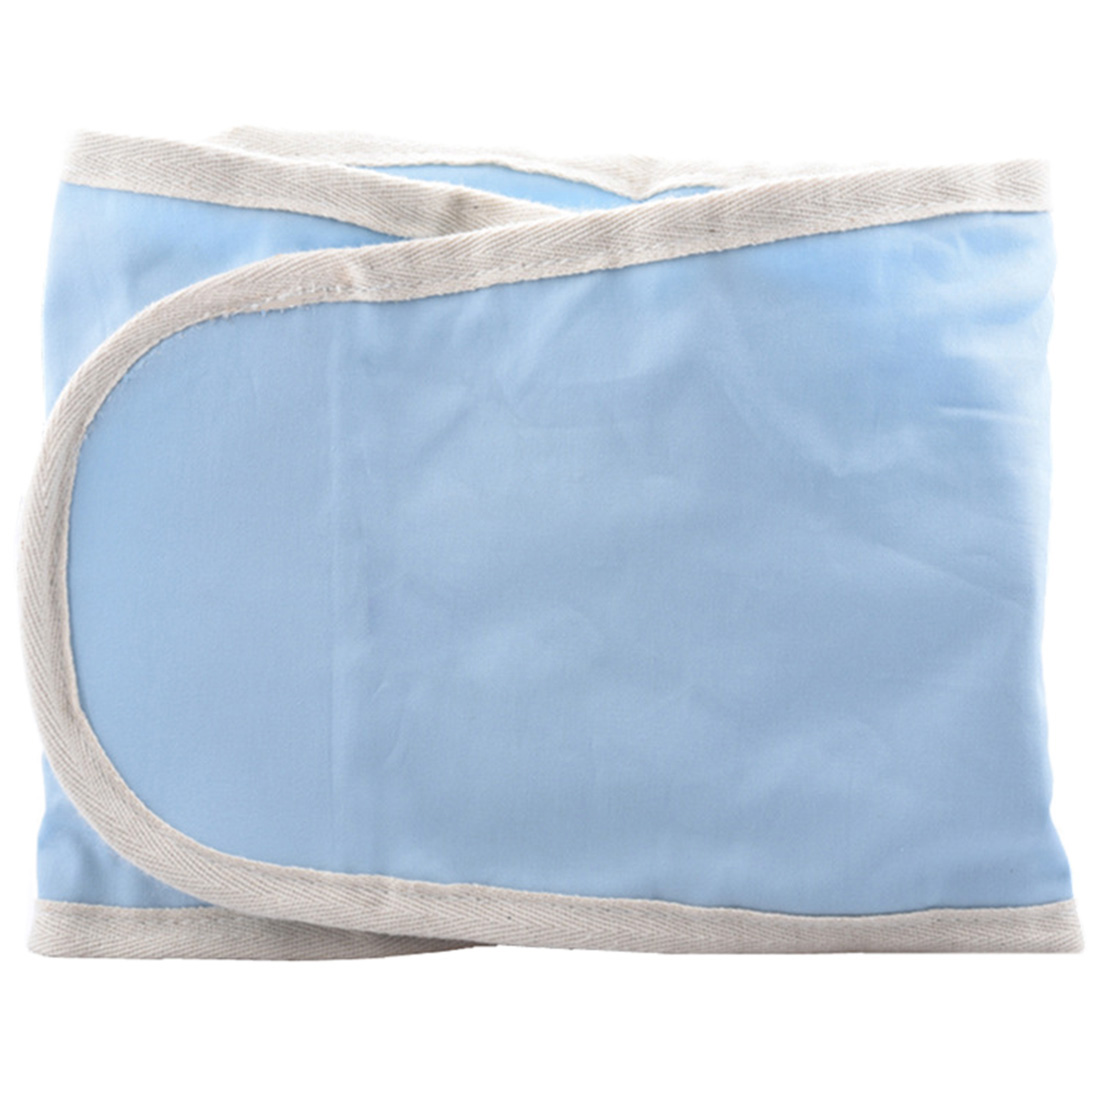 Hot Baby Arms Only Swaddle Strap Pure Cotton Swaddle Blanket For Safe Sleeping Soft Newborn Blankets Bath Gauze - Grey Blue Pink